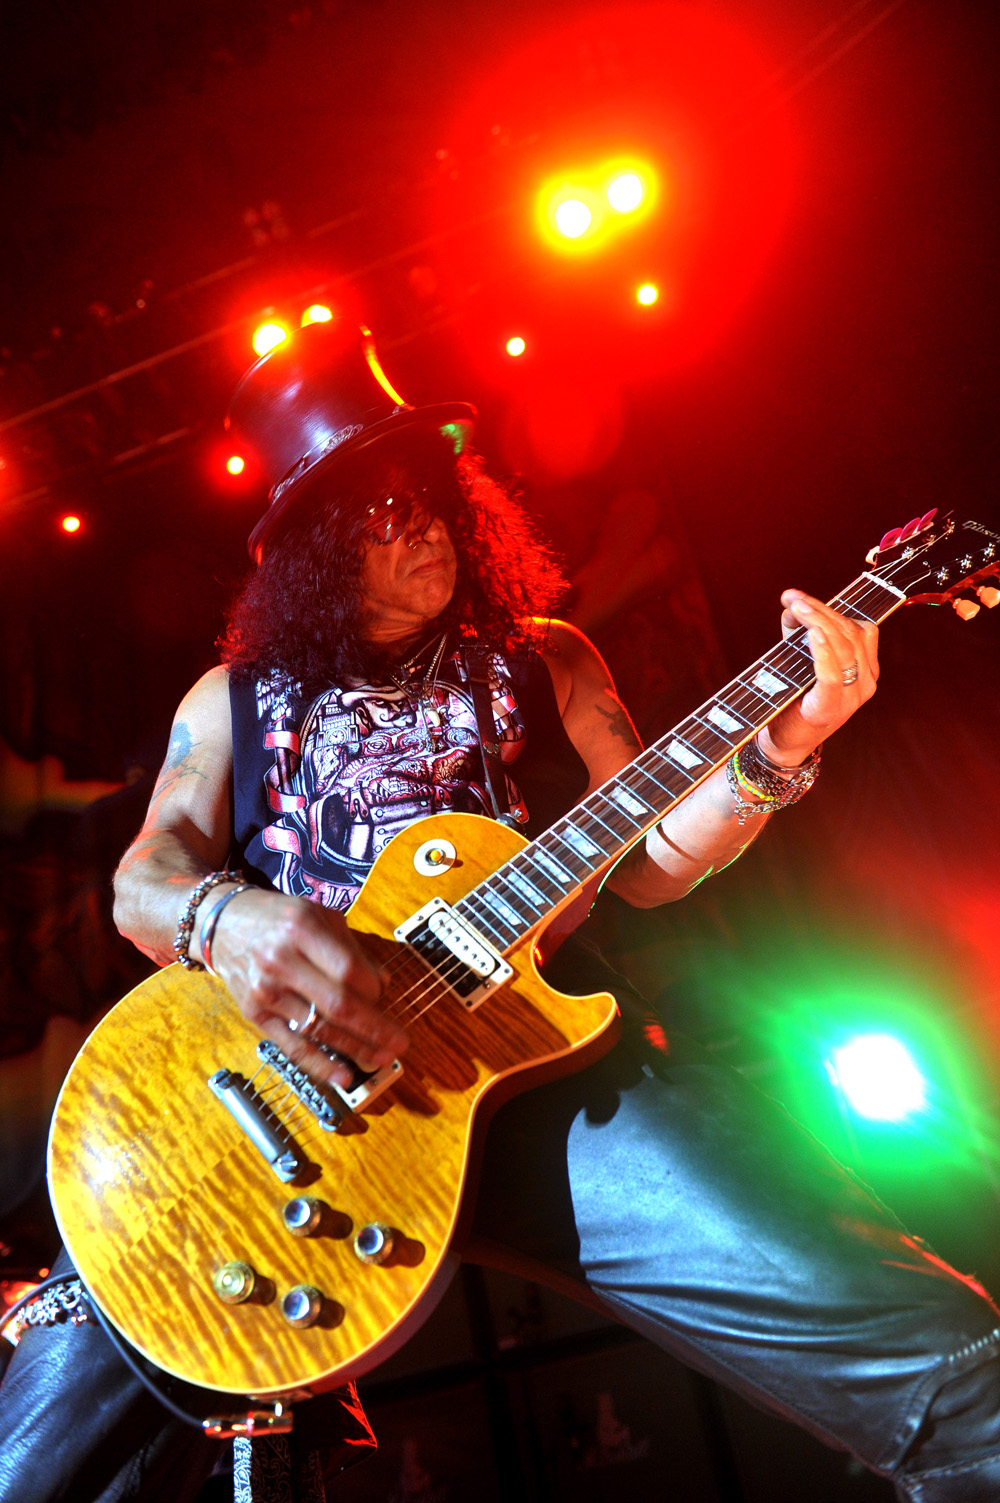 Photograph of Slash on stage at Victoria Hall, Hanley